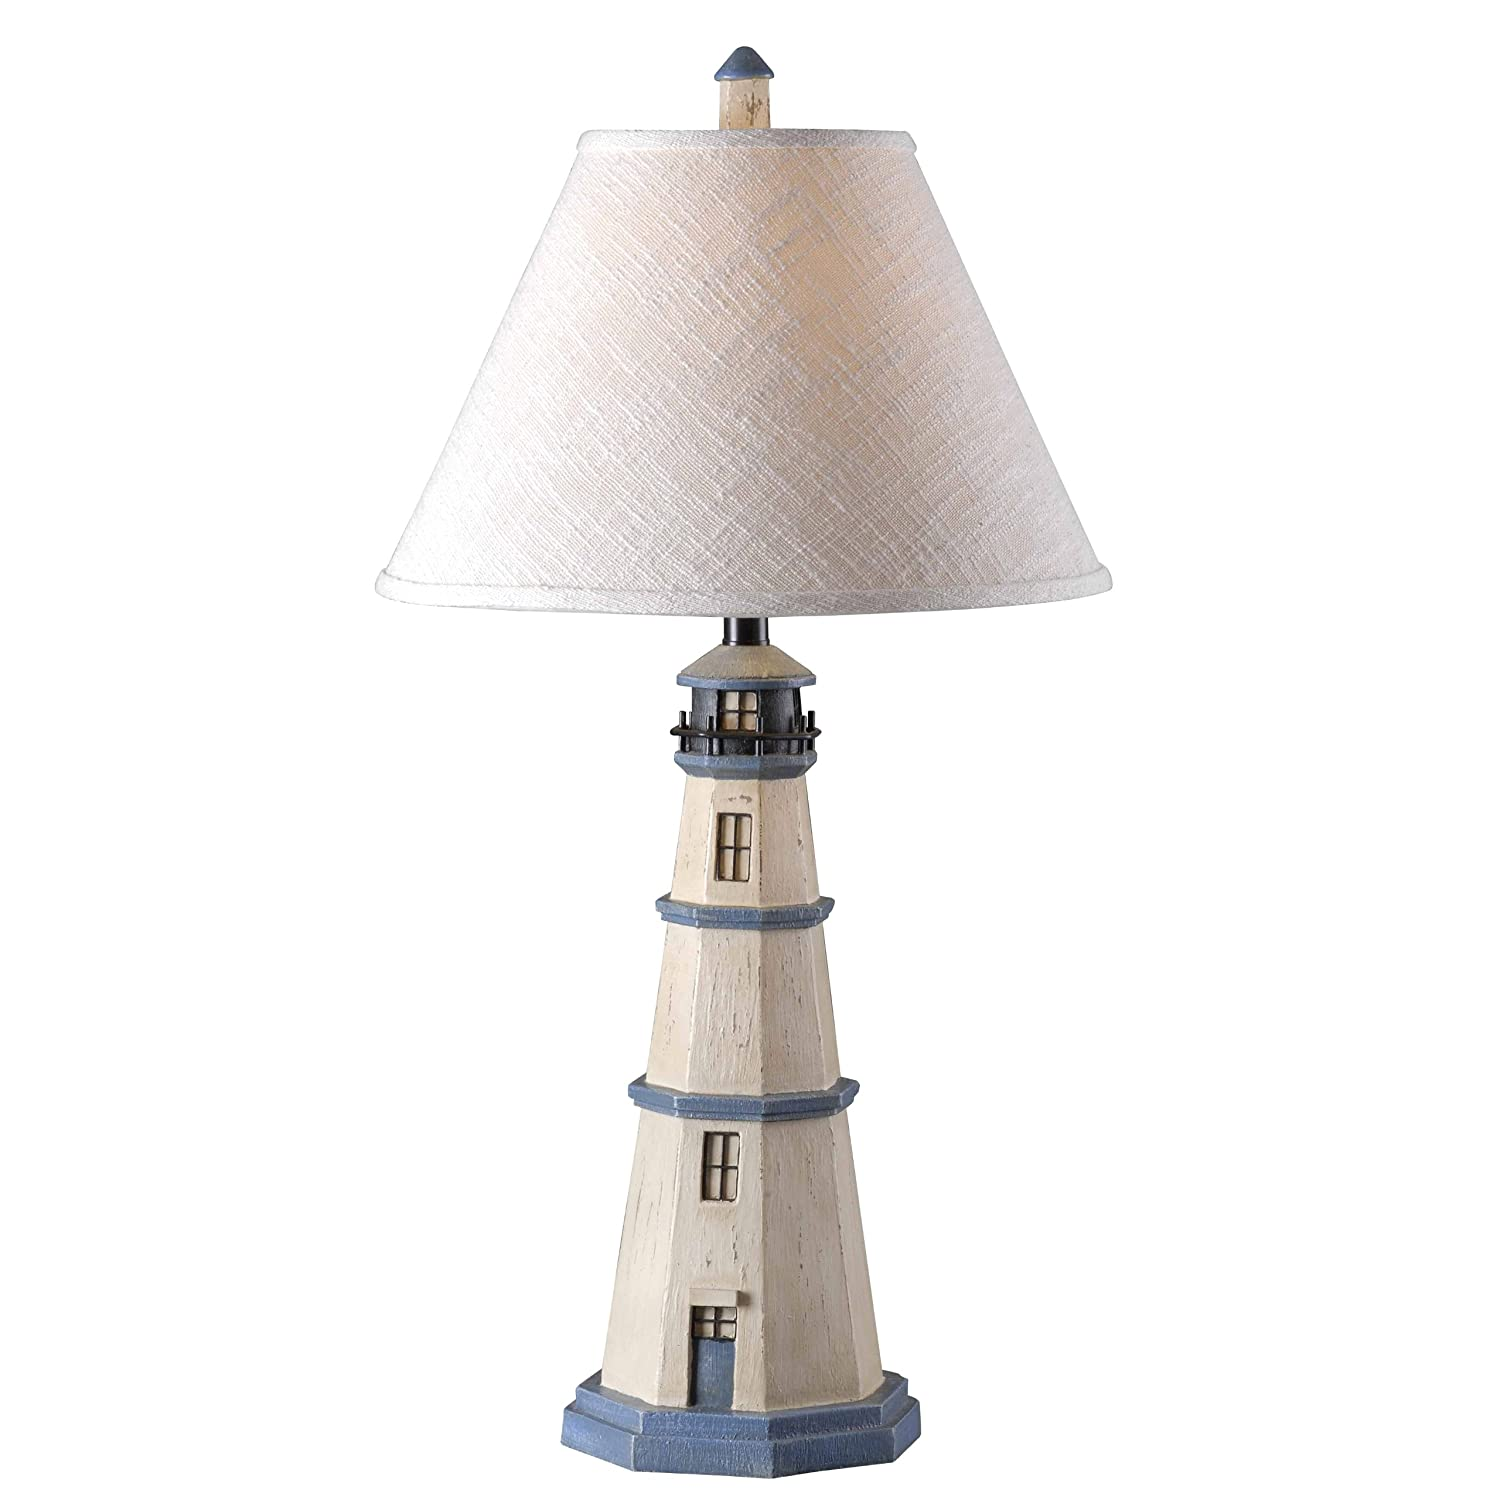 Kenroy Home 20140AW Nantucket Lighthouse Table Lamp 31 Inch Height, 16 Inch Diameter Antique White